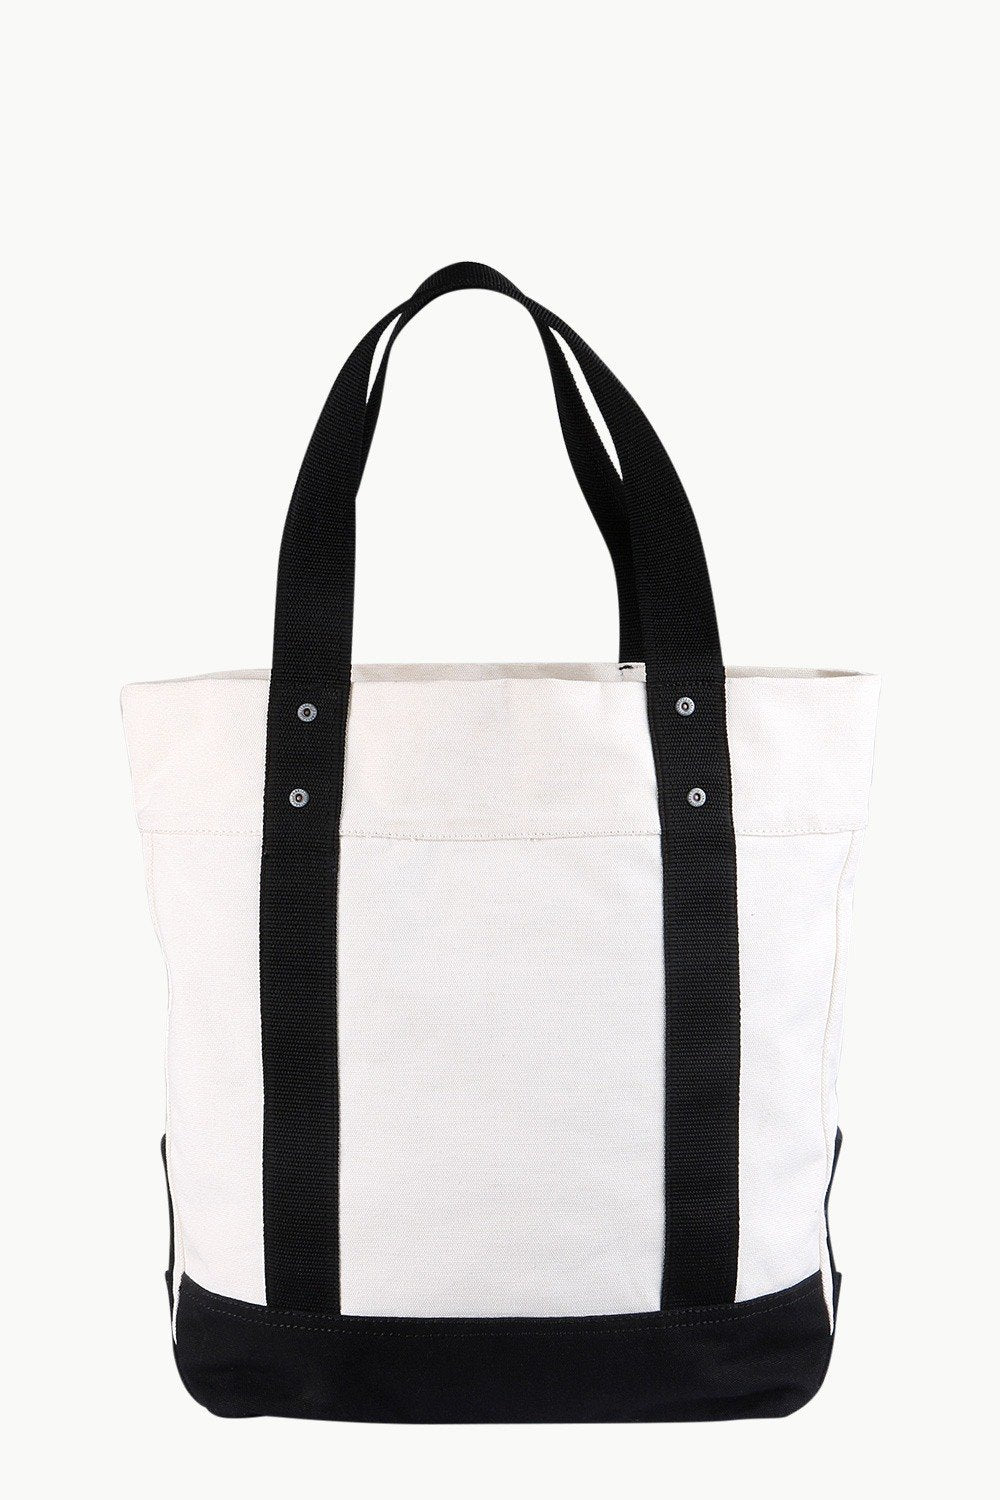 a2ab5ee7aabc Buy Online Throw In Oatmeal Canvas Tote Bags Online in India at Zobello